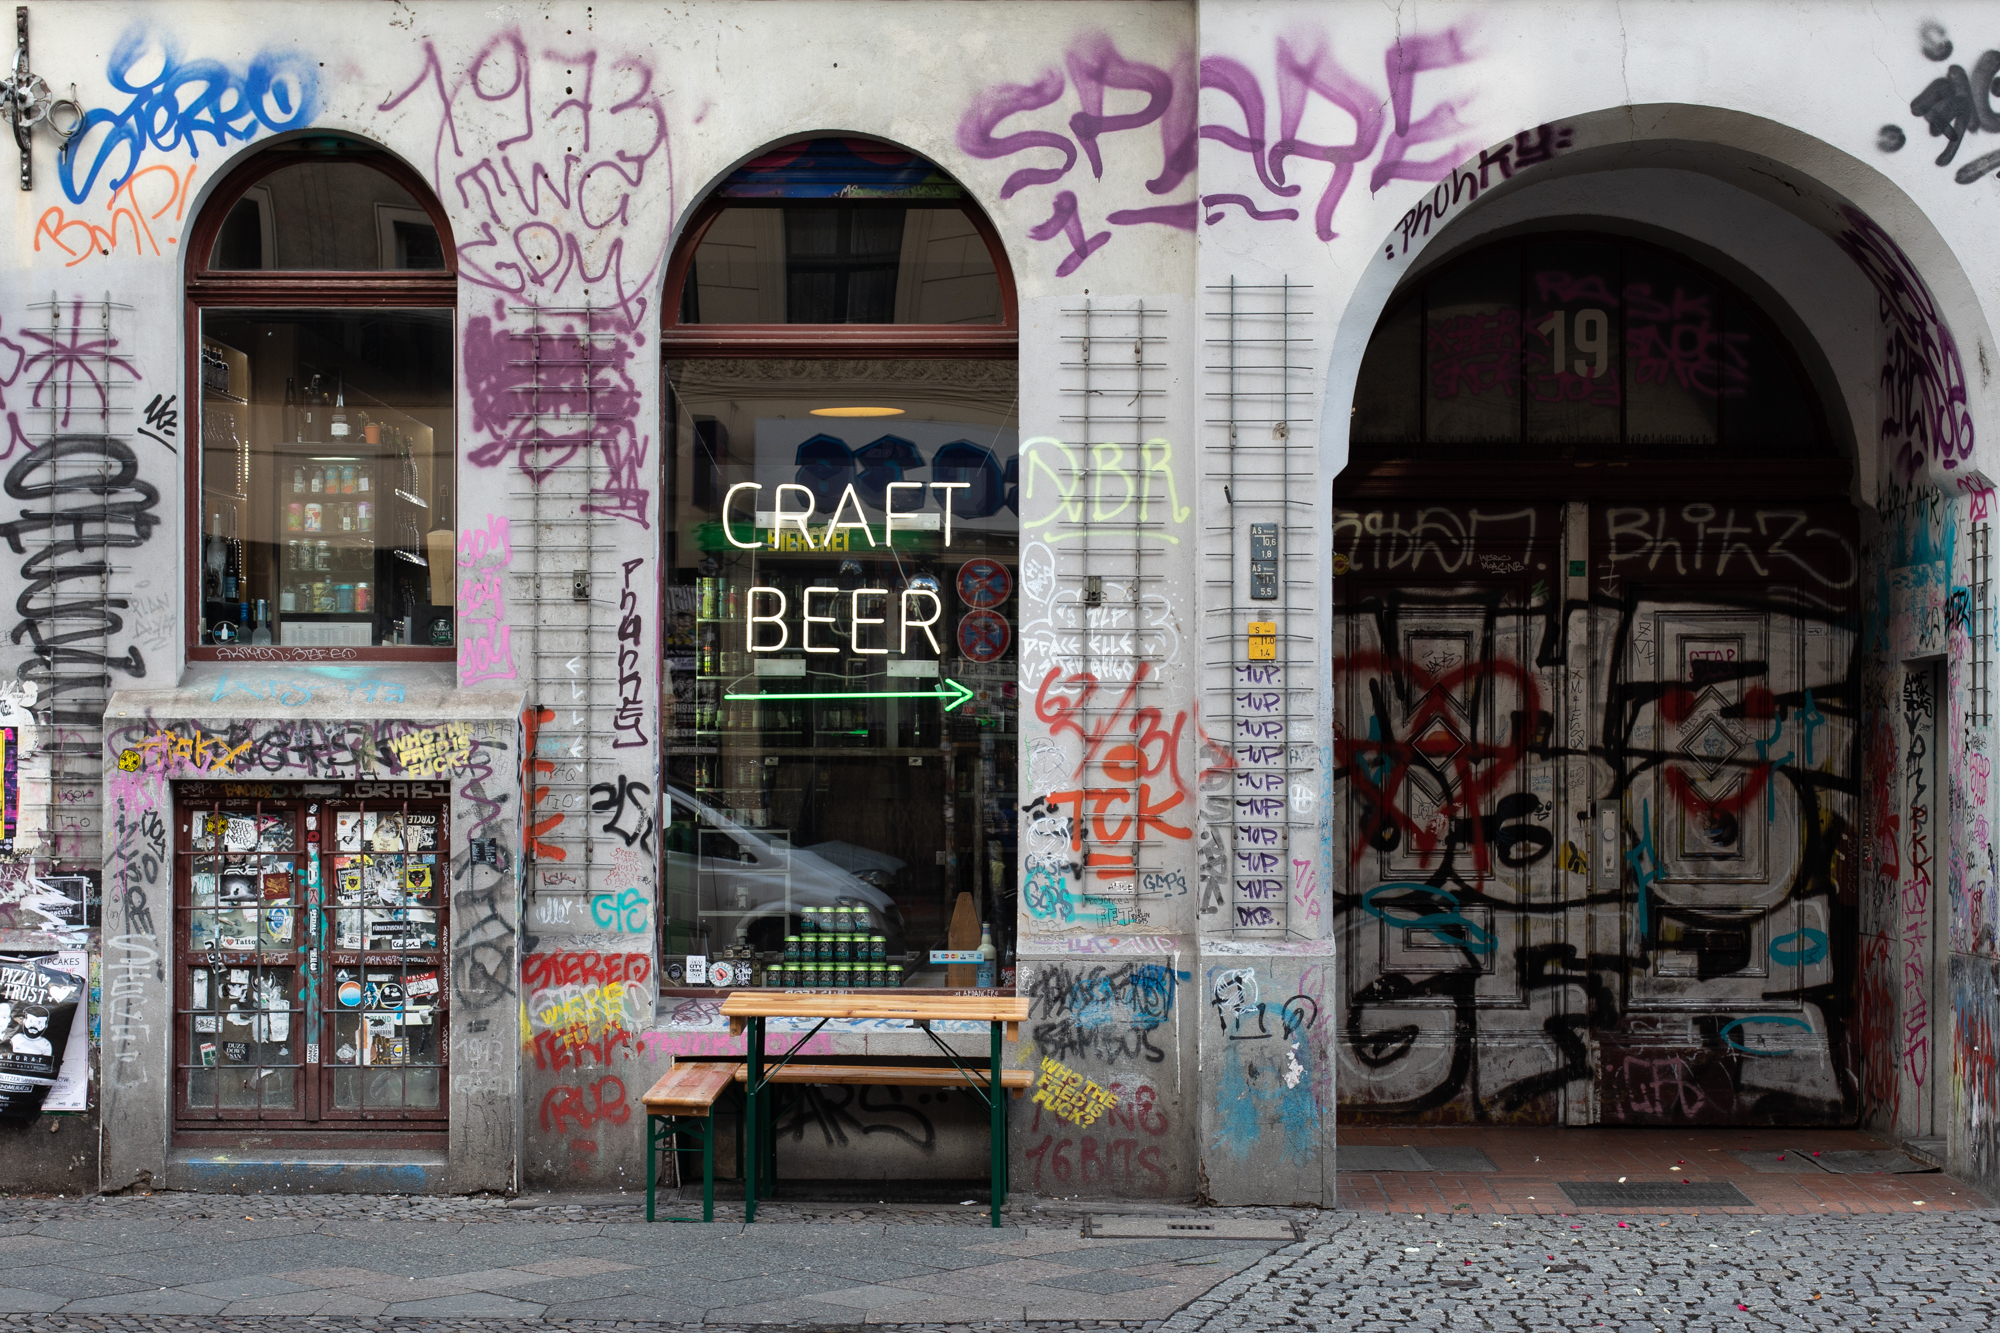 Biererei Store Berlin - a craft beer bottle shop in Kreuzberg - seen from the street on Oranienstraße